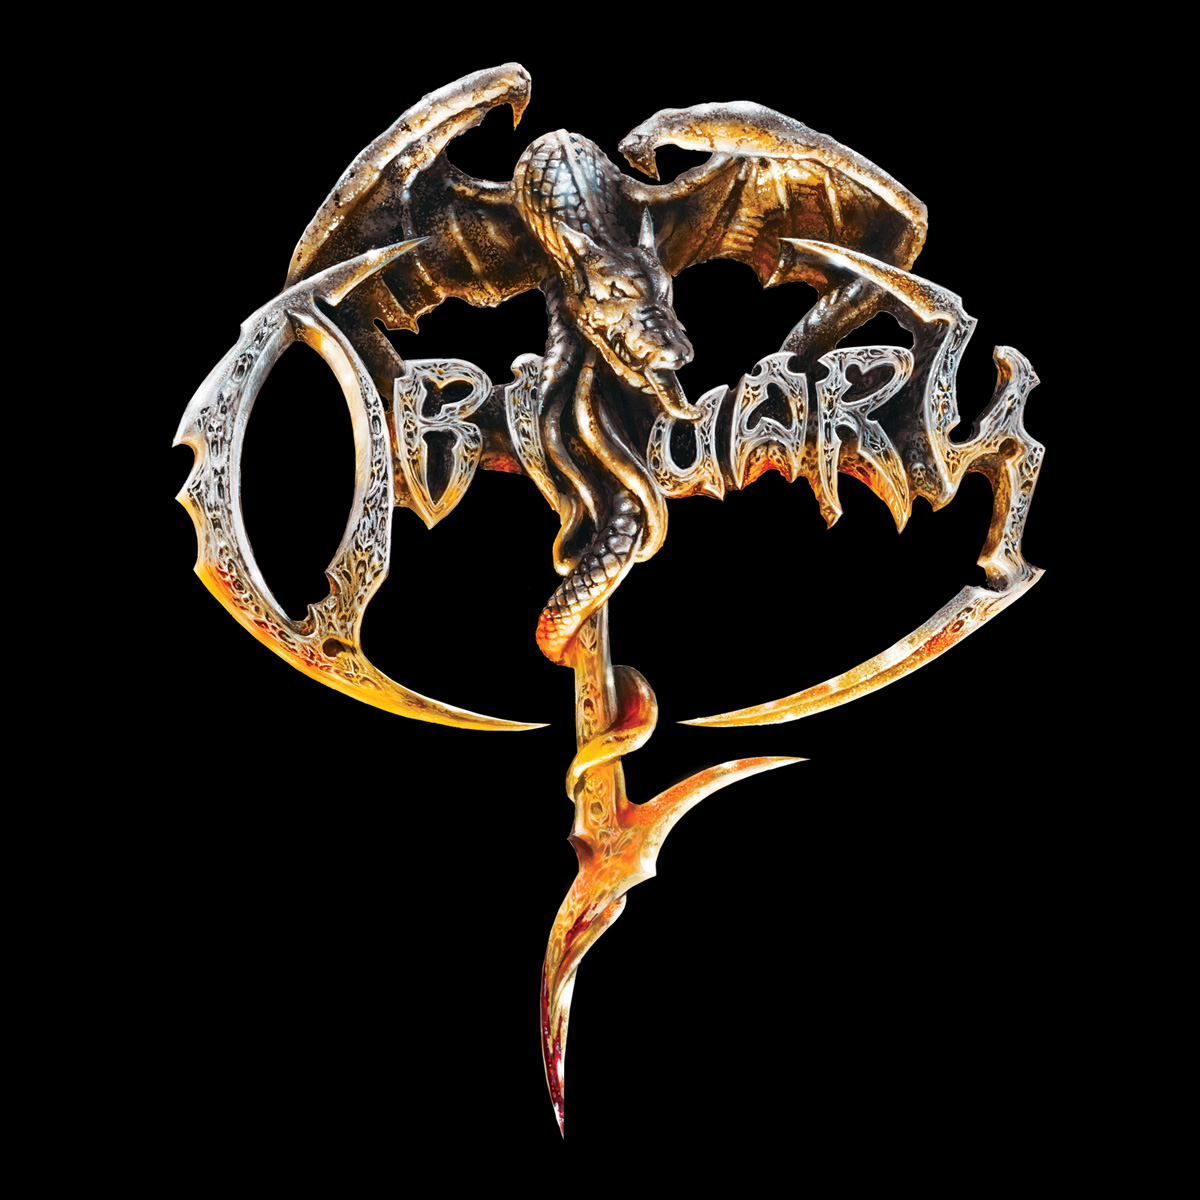 Obituary - CD